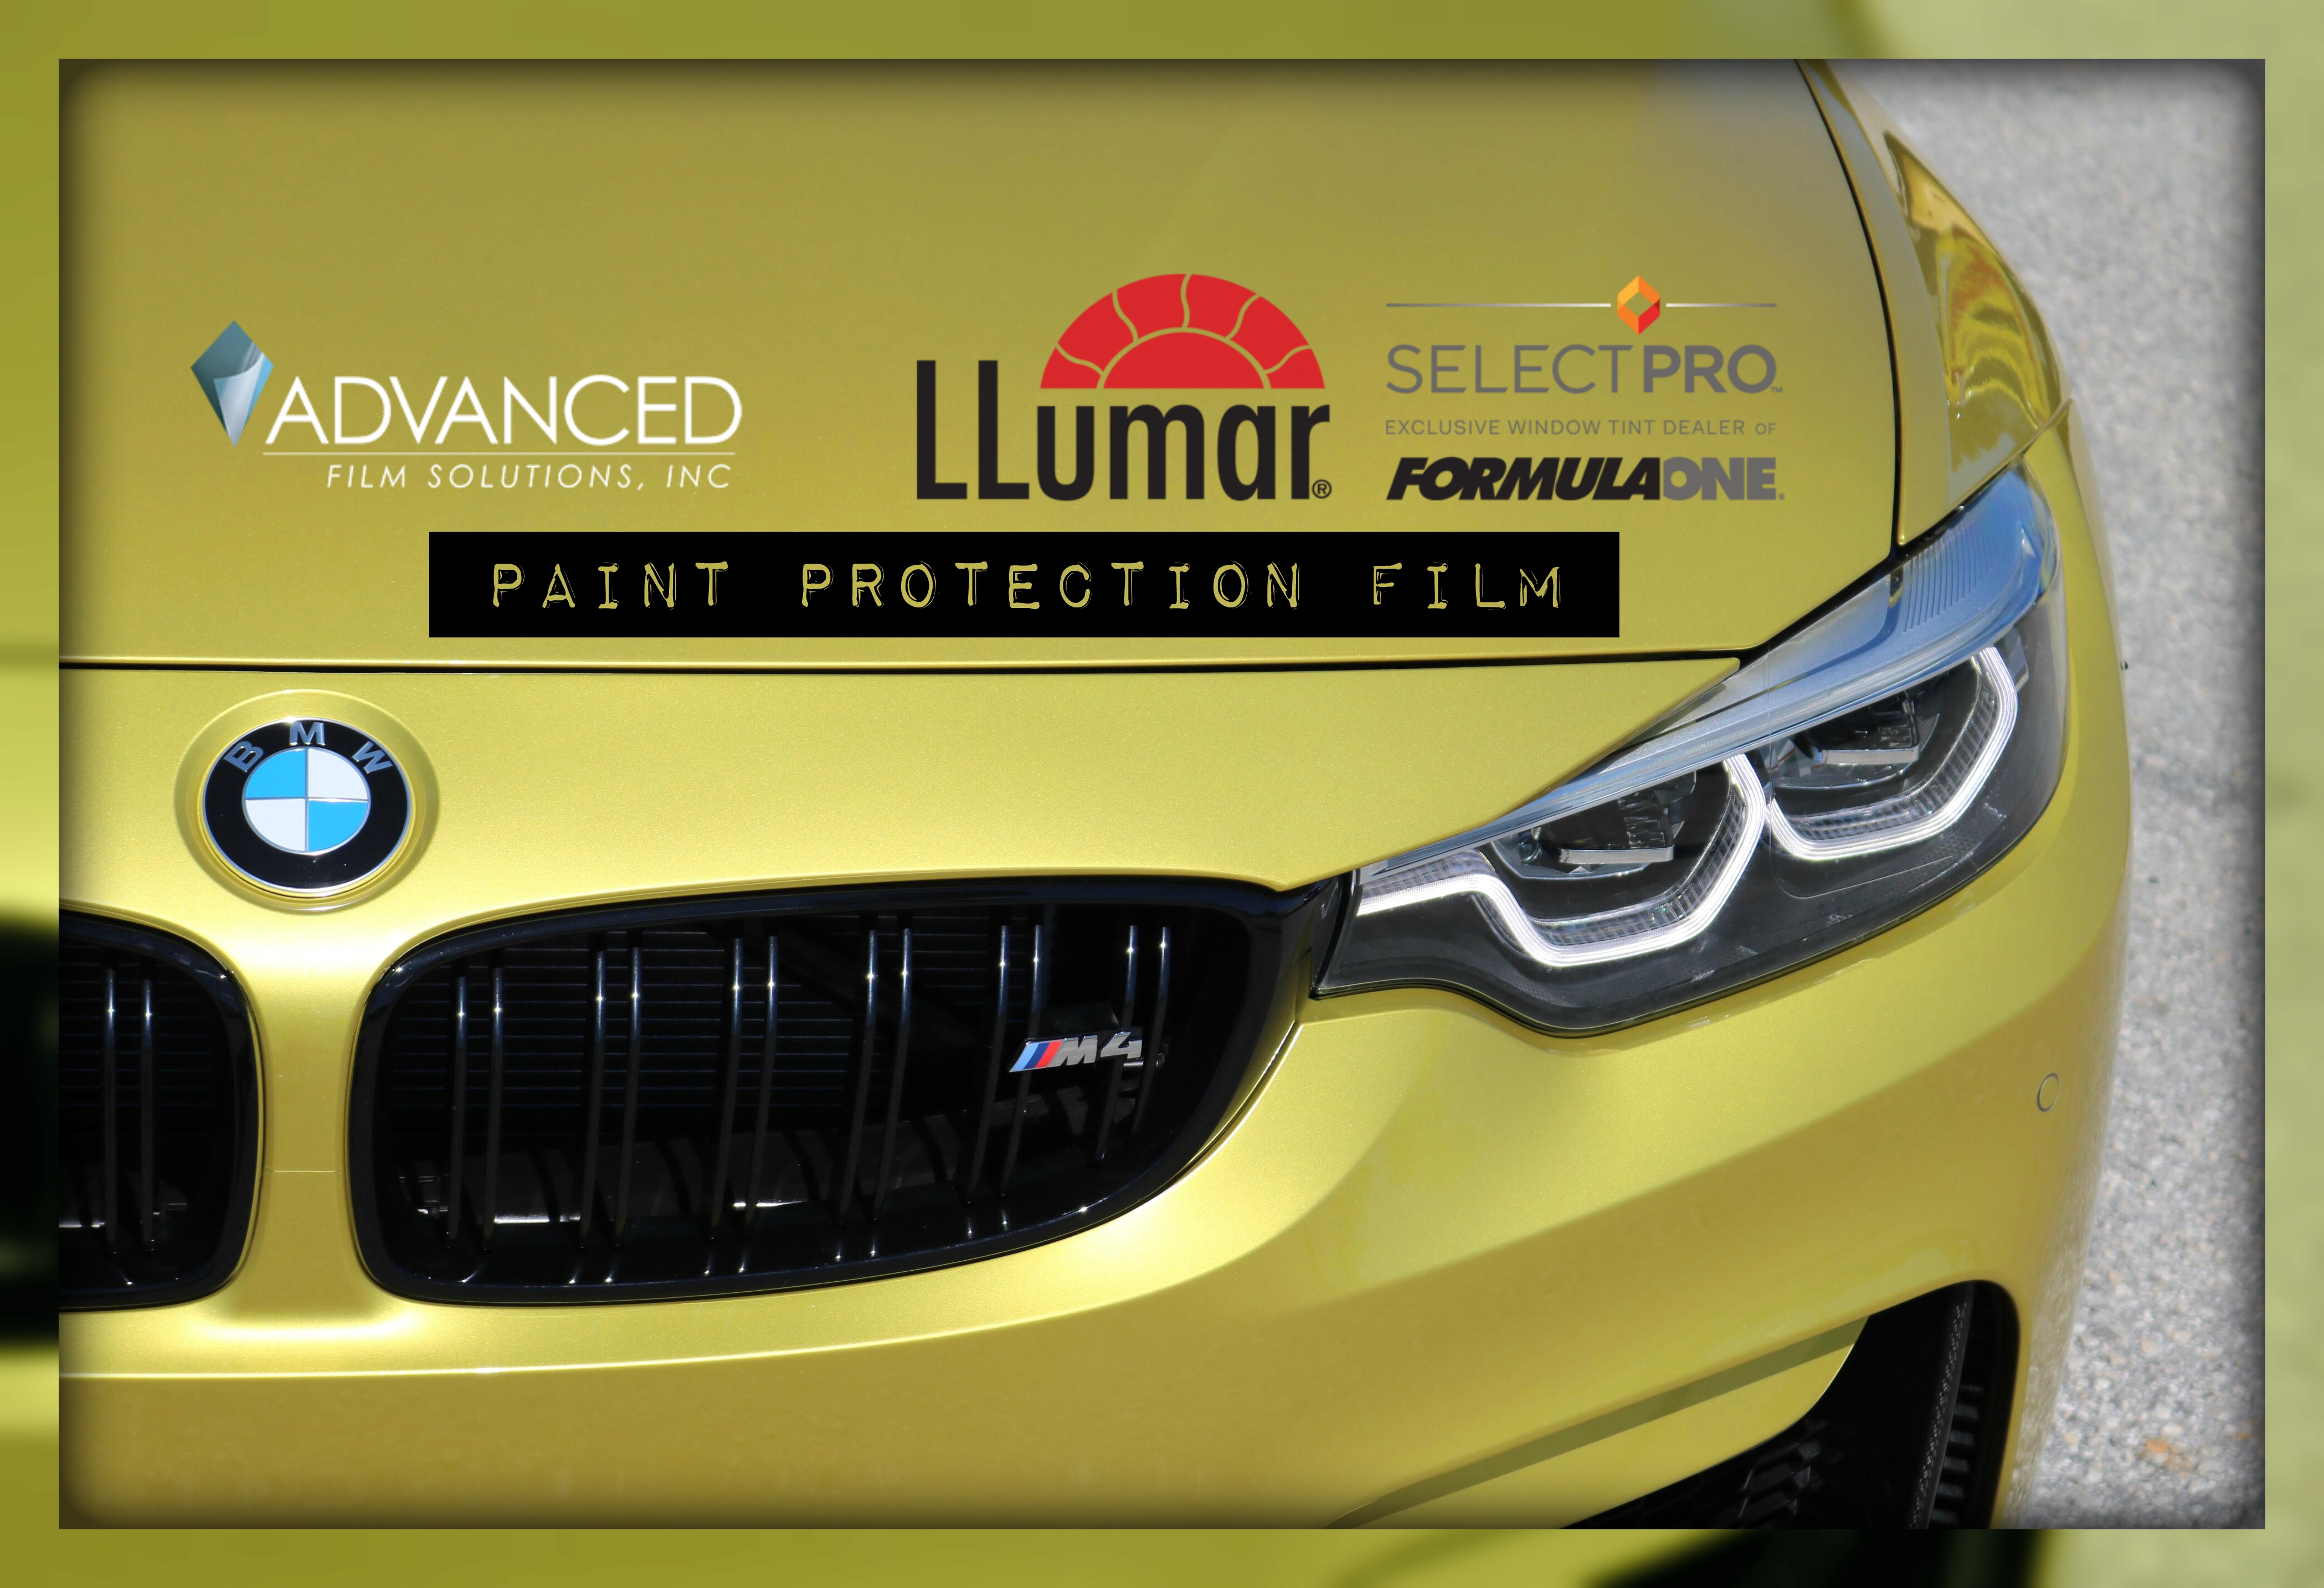 Protect Your Car's Finish, Advanced Film Solutions Tampa Paint Protection Film